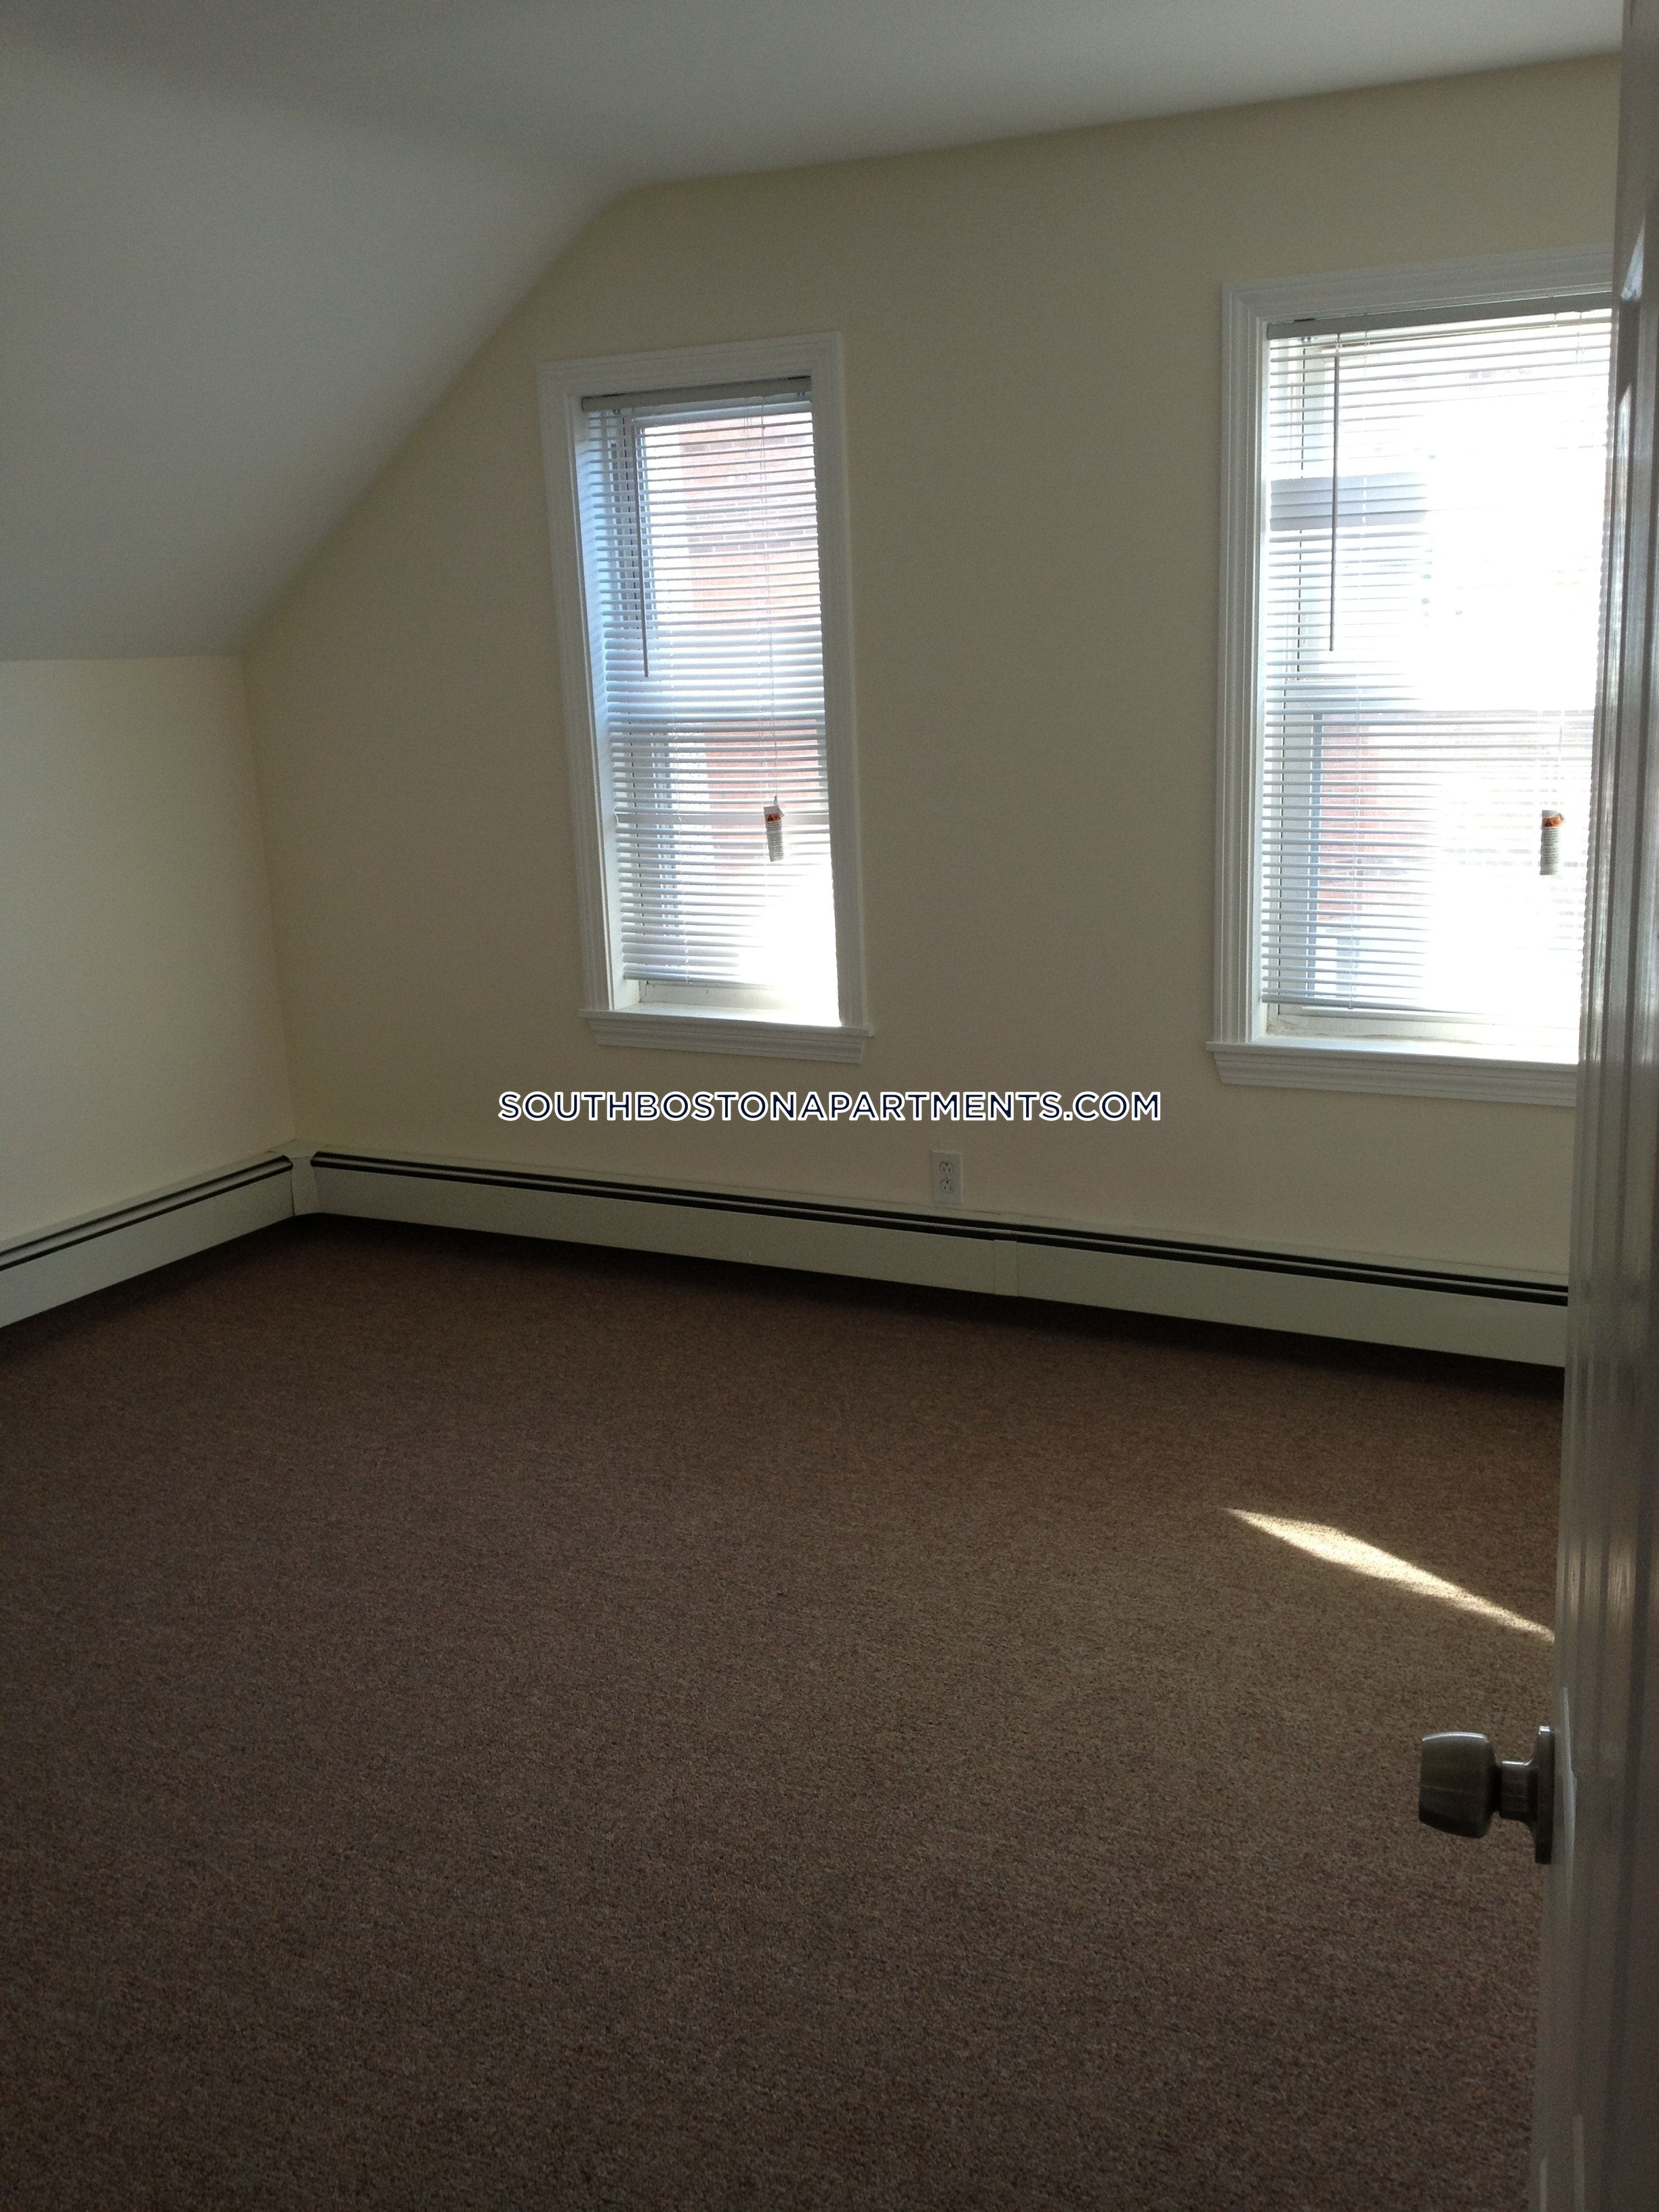 Jackpot!!! - Boston - South Boston - Andrew Square $1,800